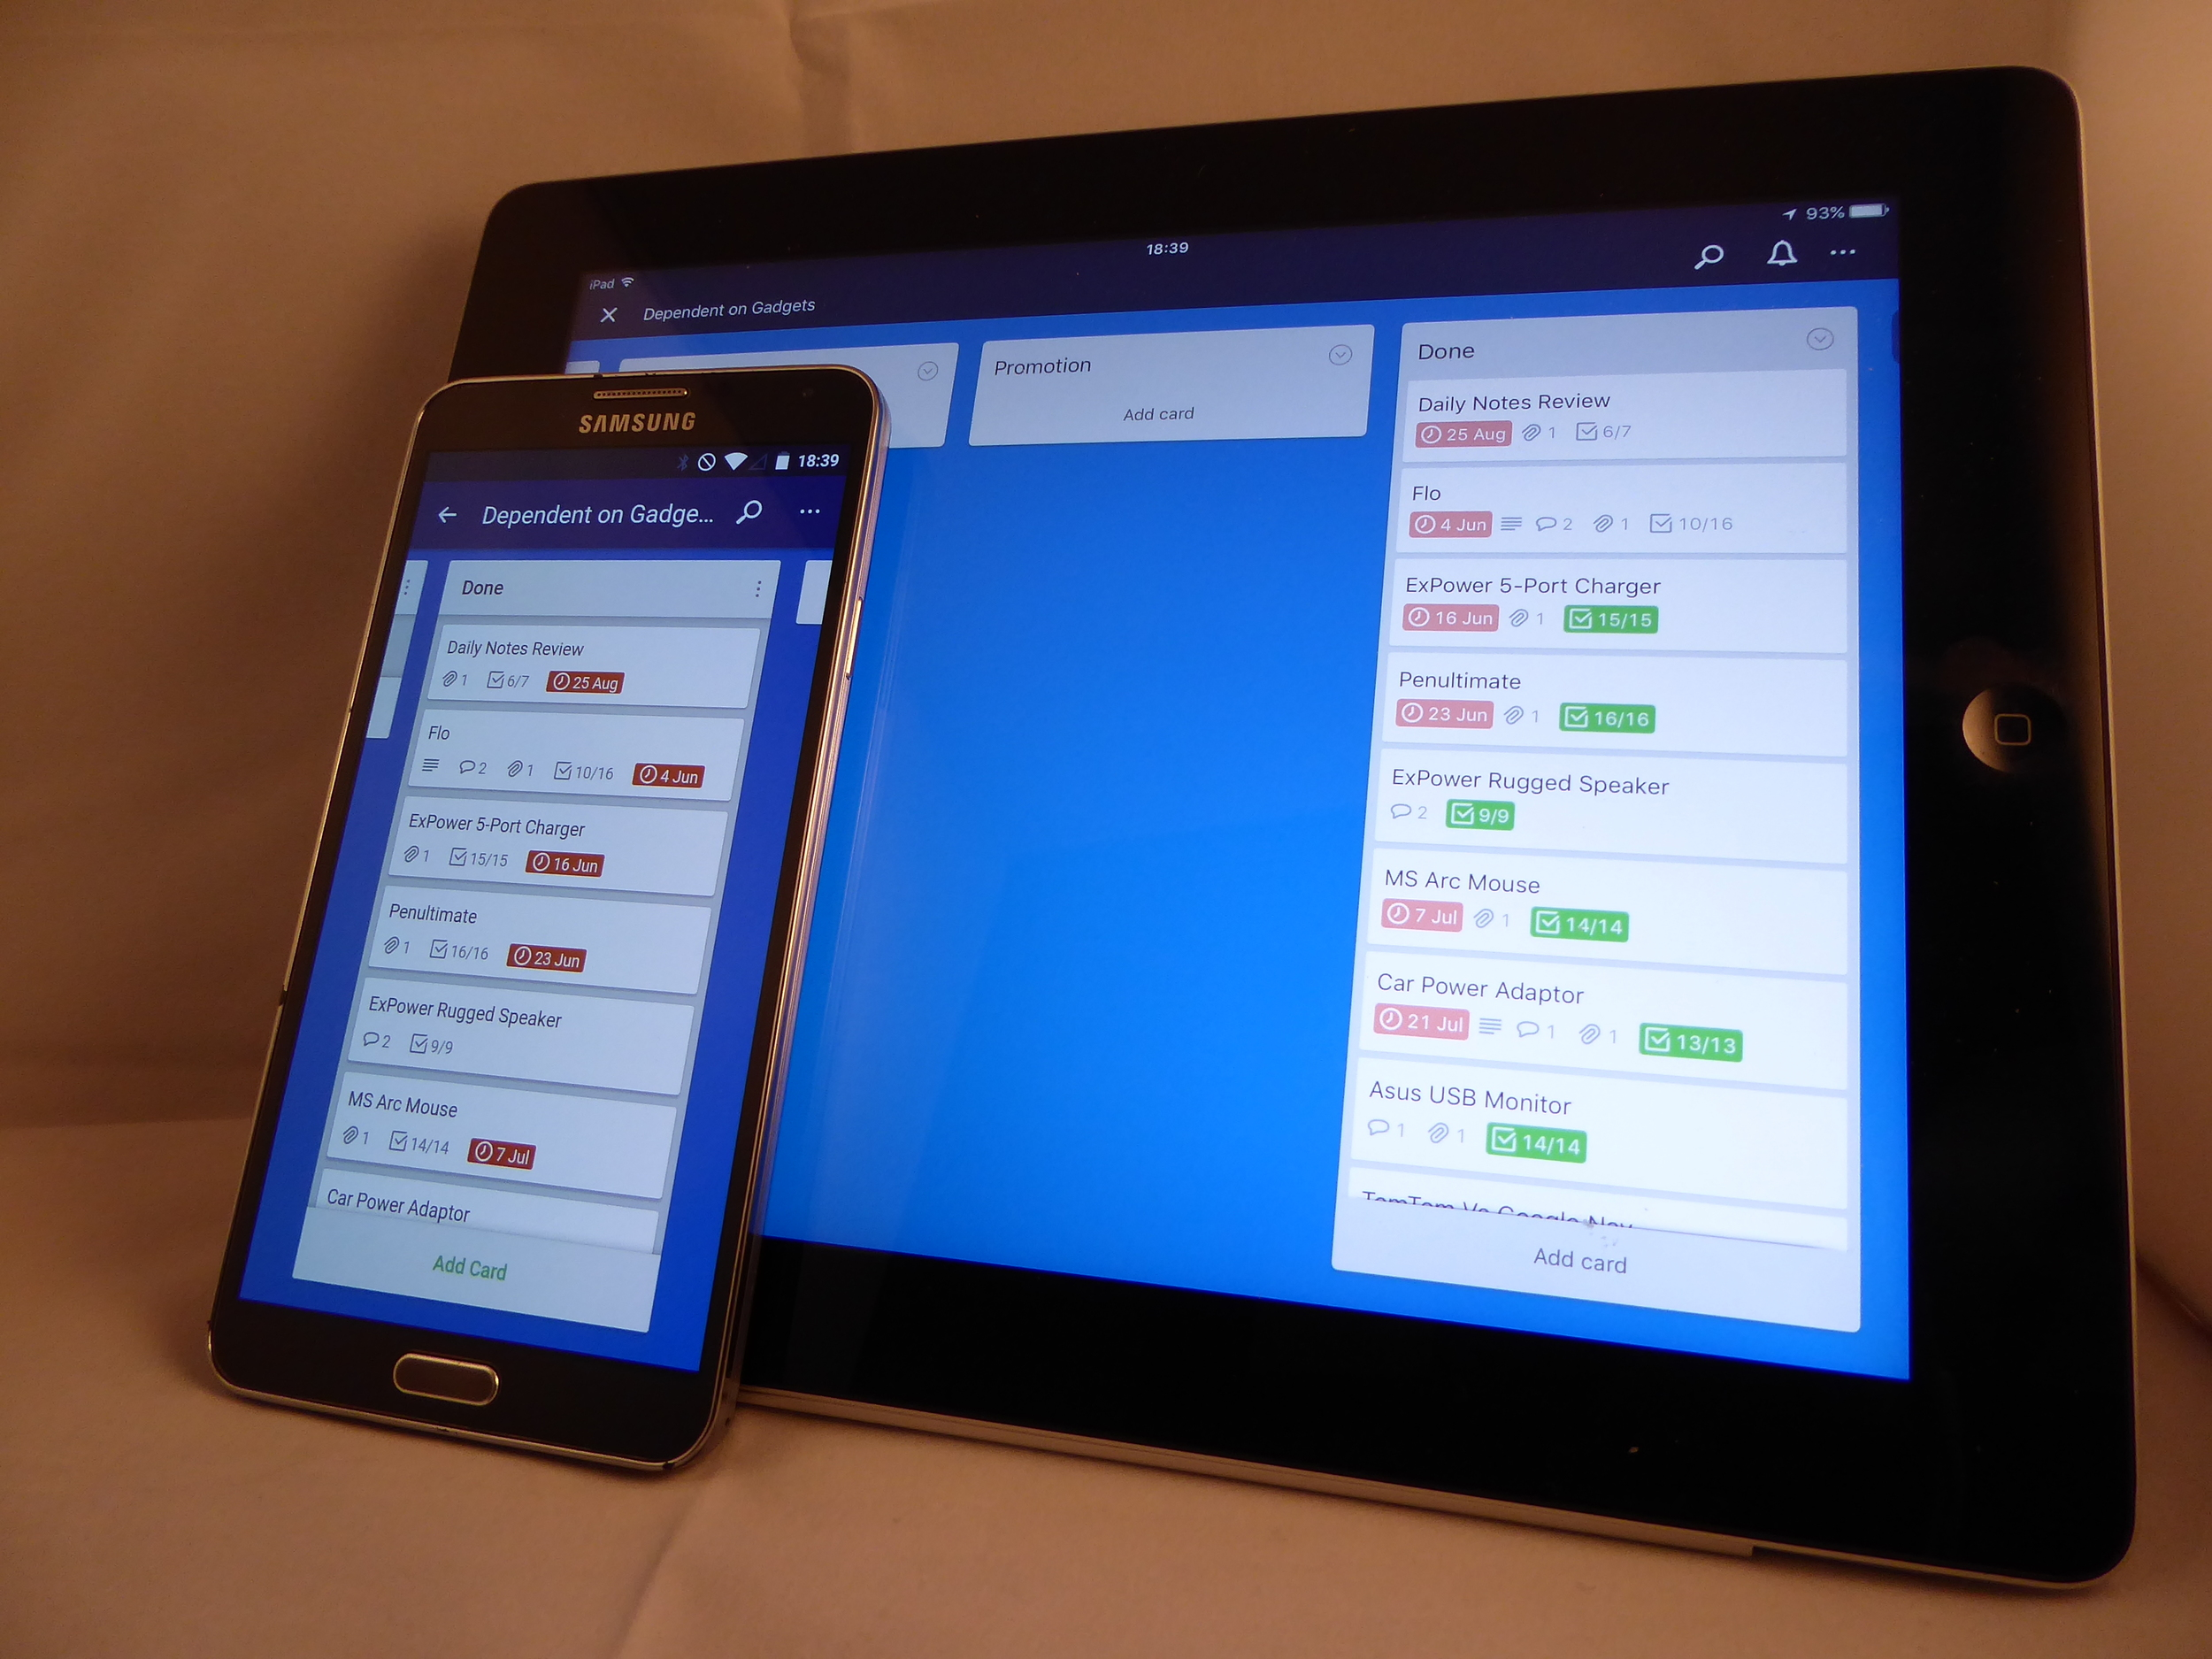 Trello apps run well whether you have an Android or IOS gadget